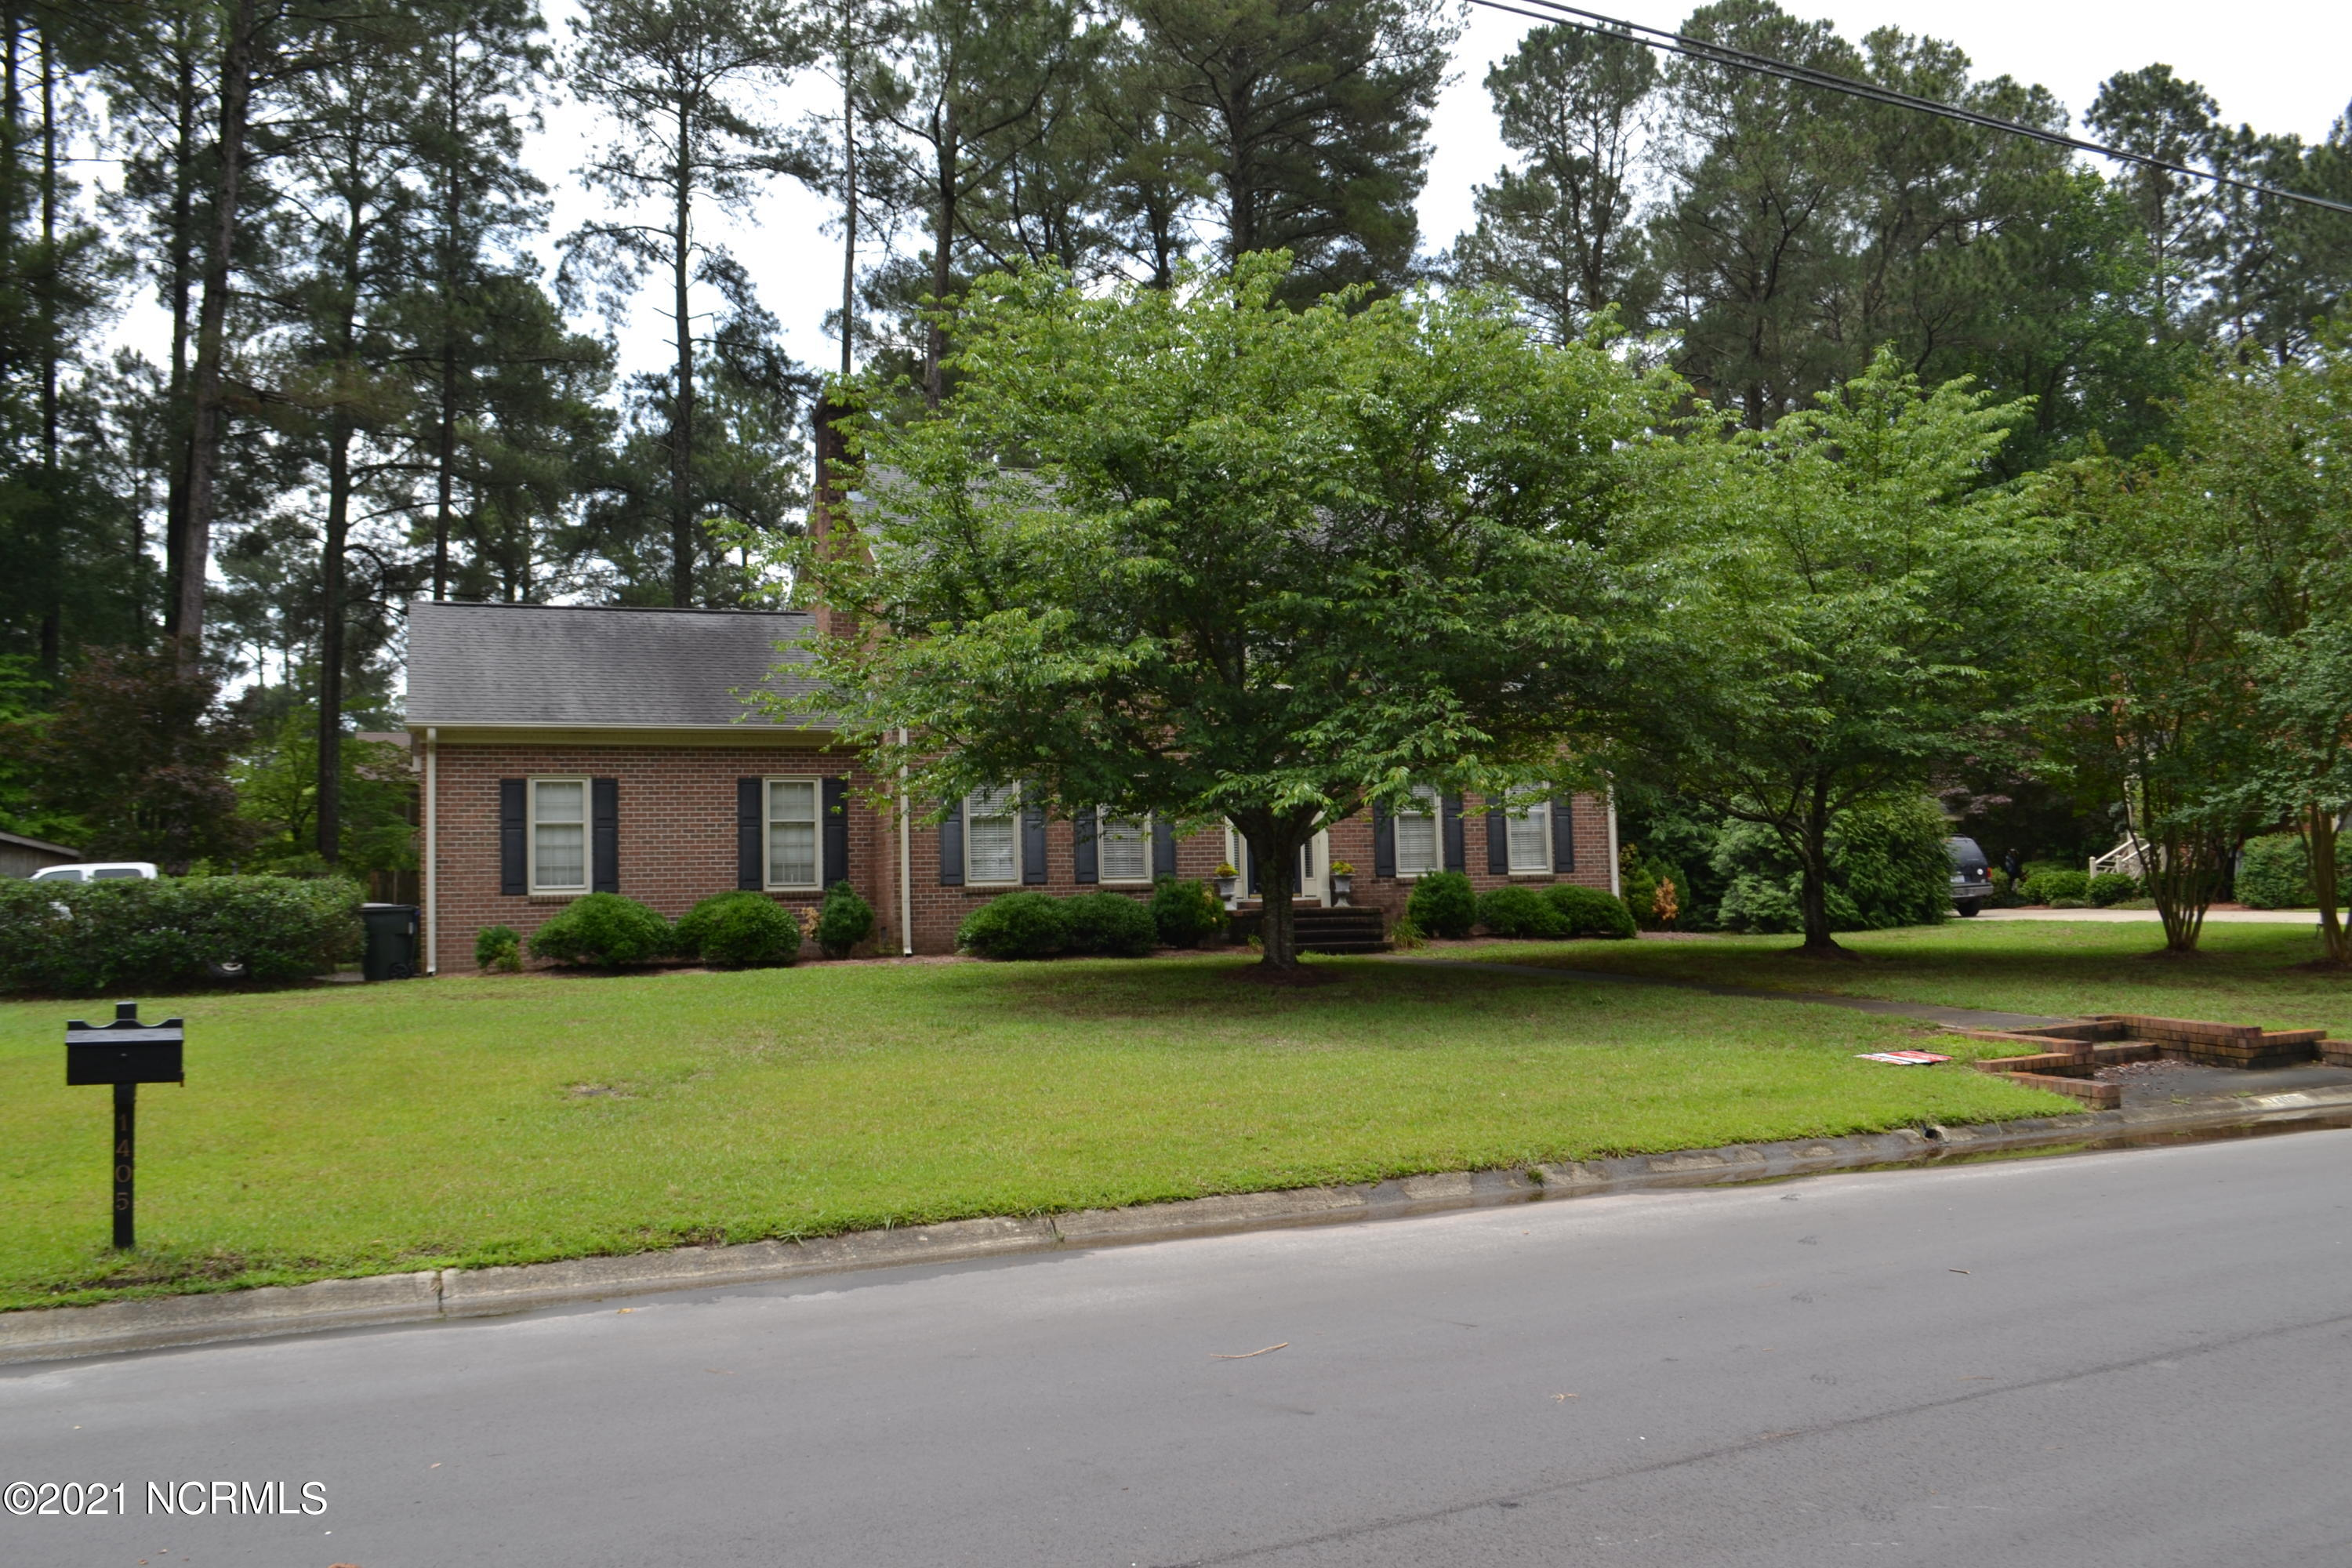 1405 Surry Street, Kinston, North Carolina 28504, 4 Bedrooms Bedrooms, 9 Rooms Rooms,2 BathroomsBathrooms,Single family residence,For sale,Surry,100274959